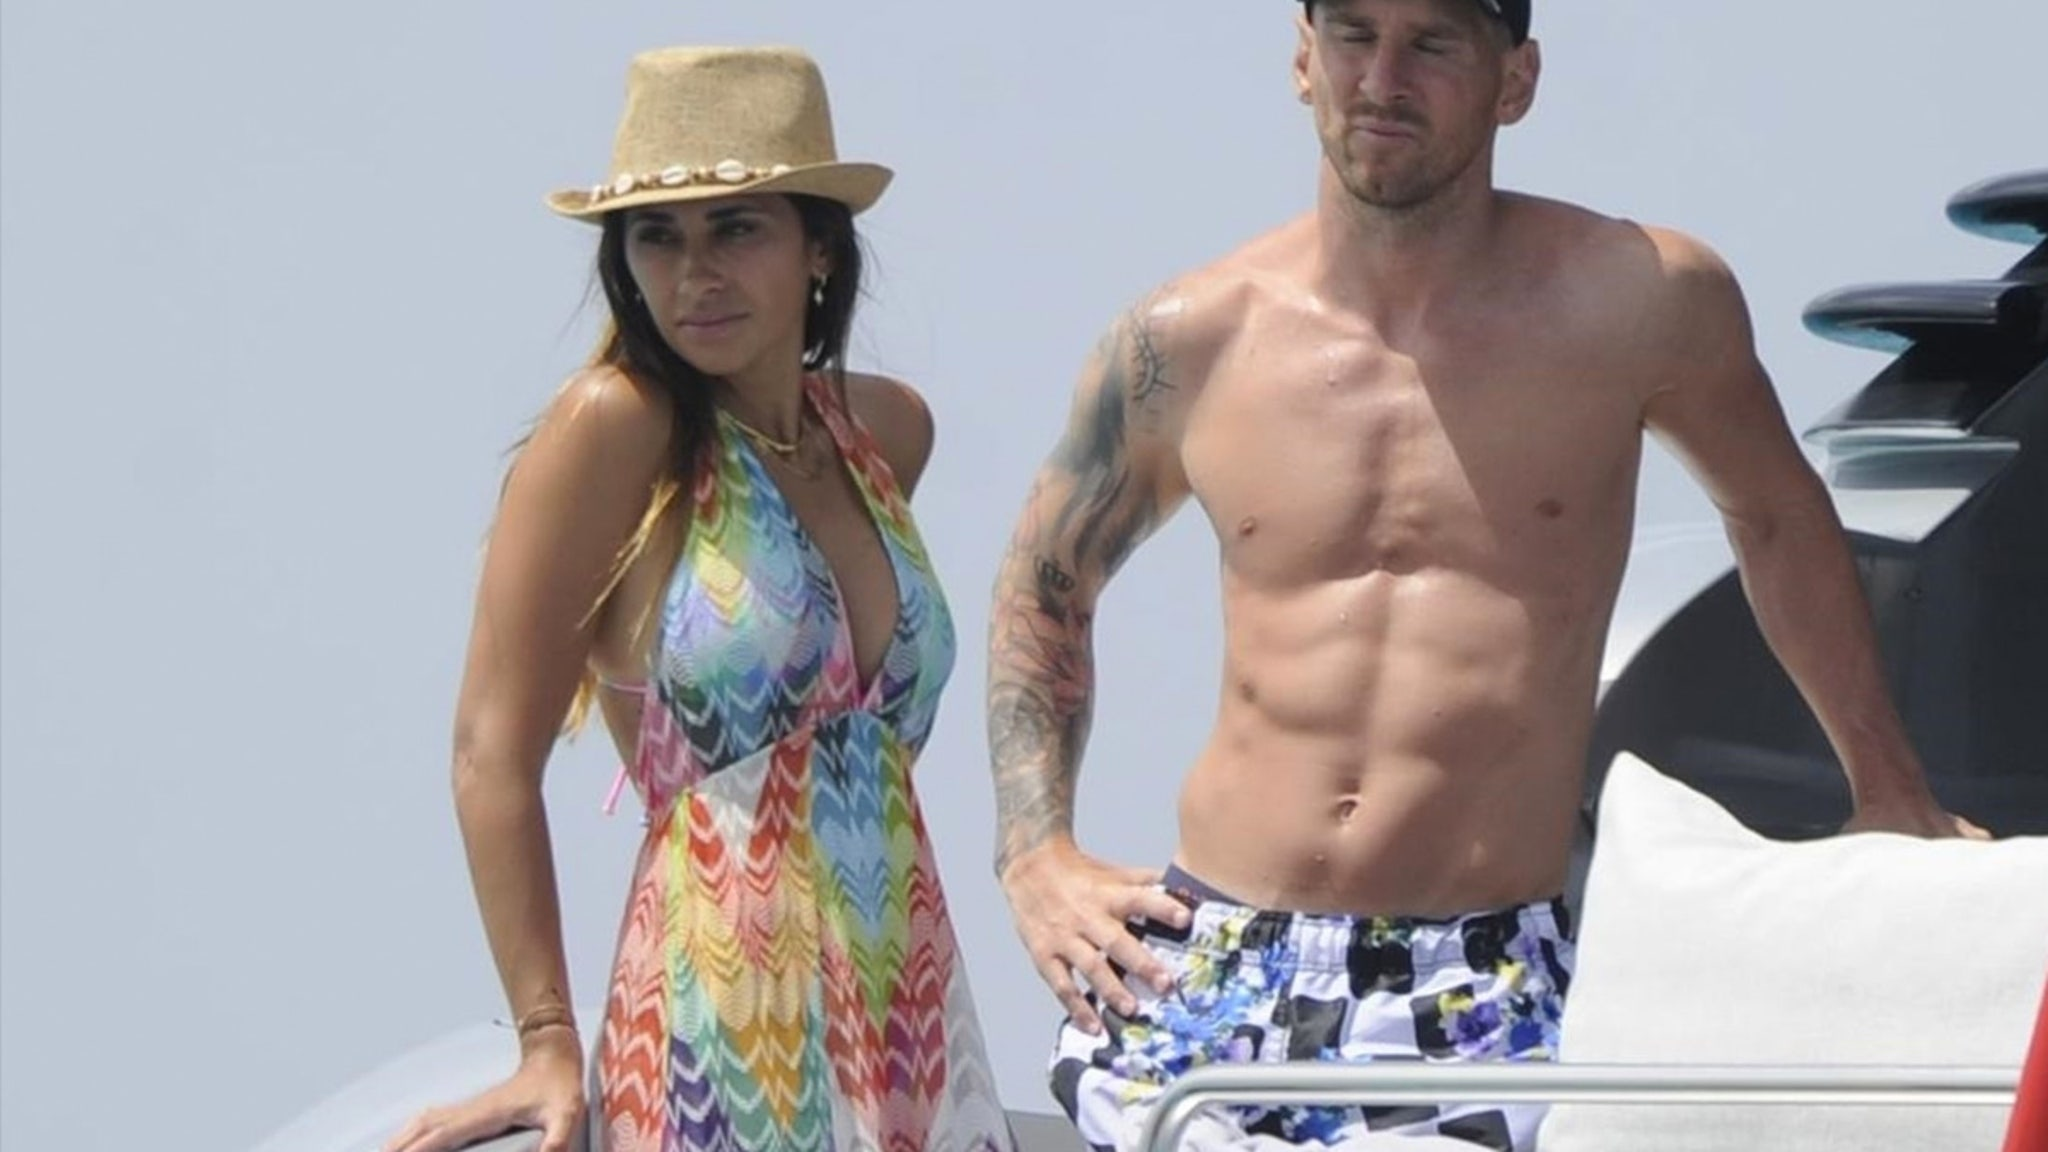 Lionel Messi Shows Off Shredded Abs On Vacay With Wife And Luis Suarez thumbnail